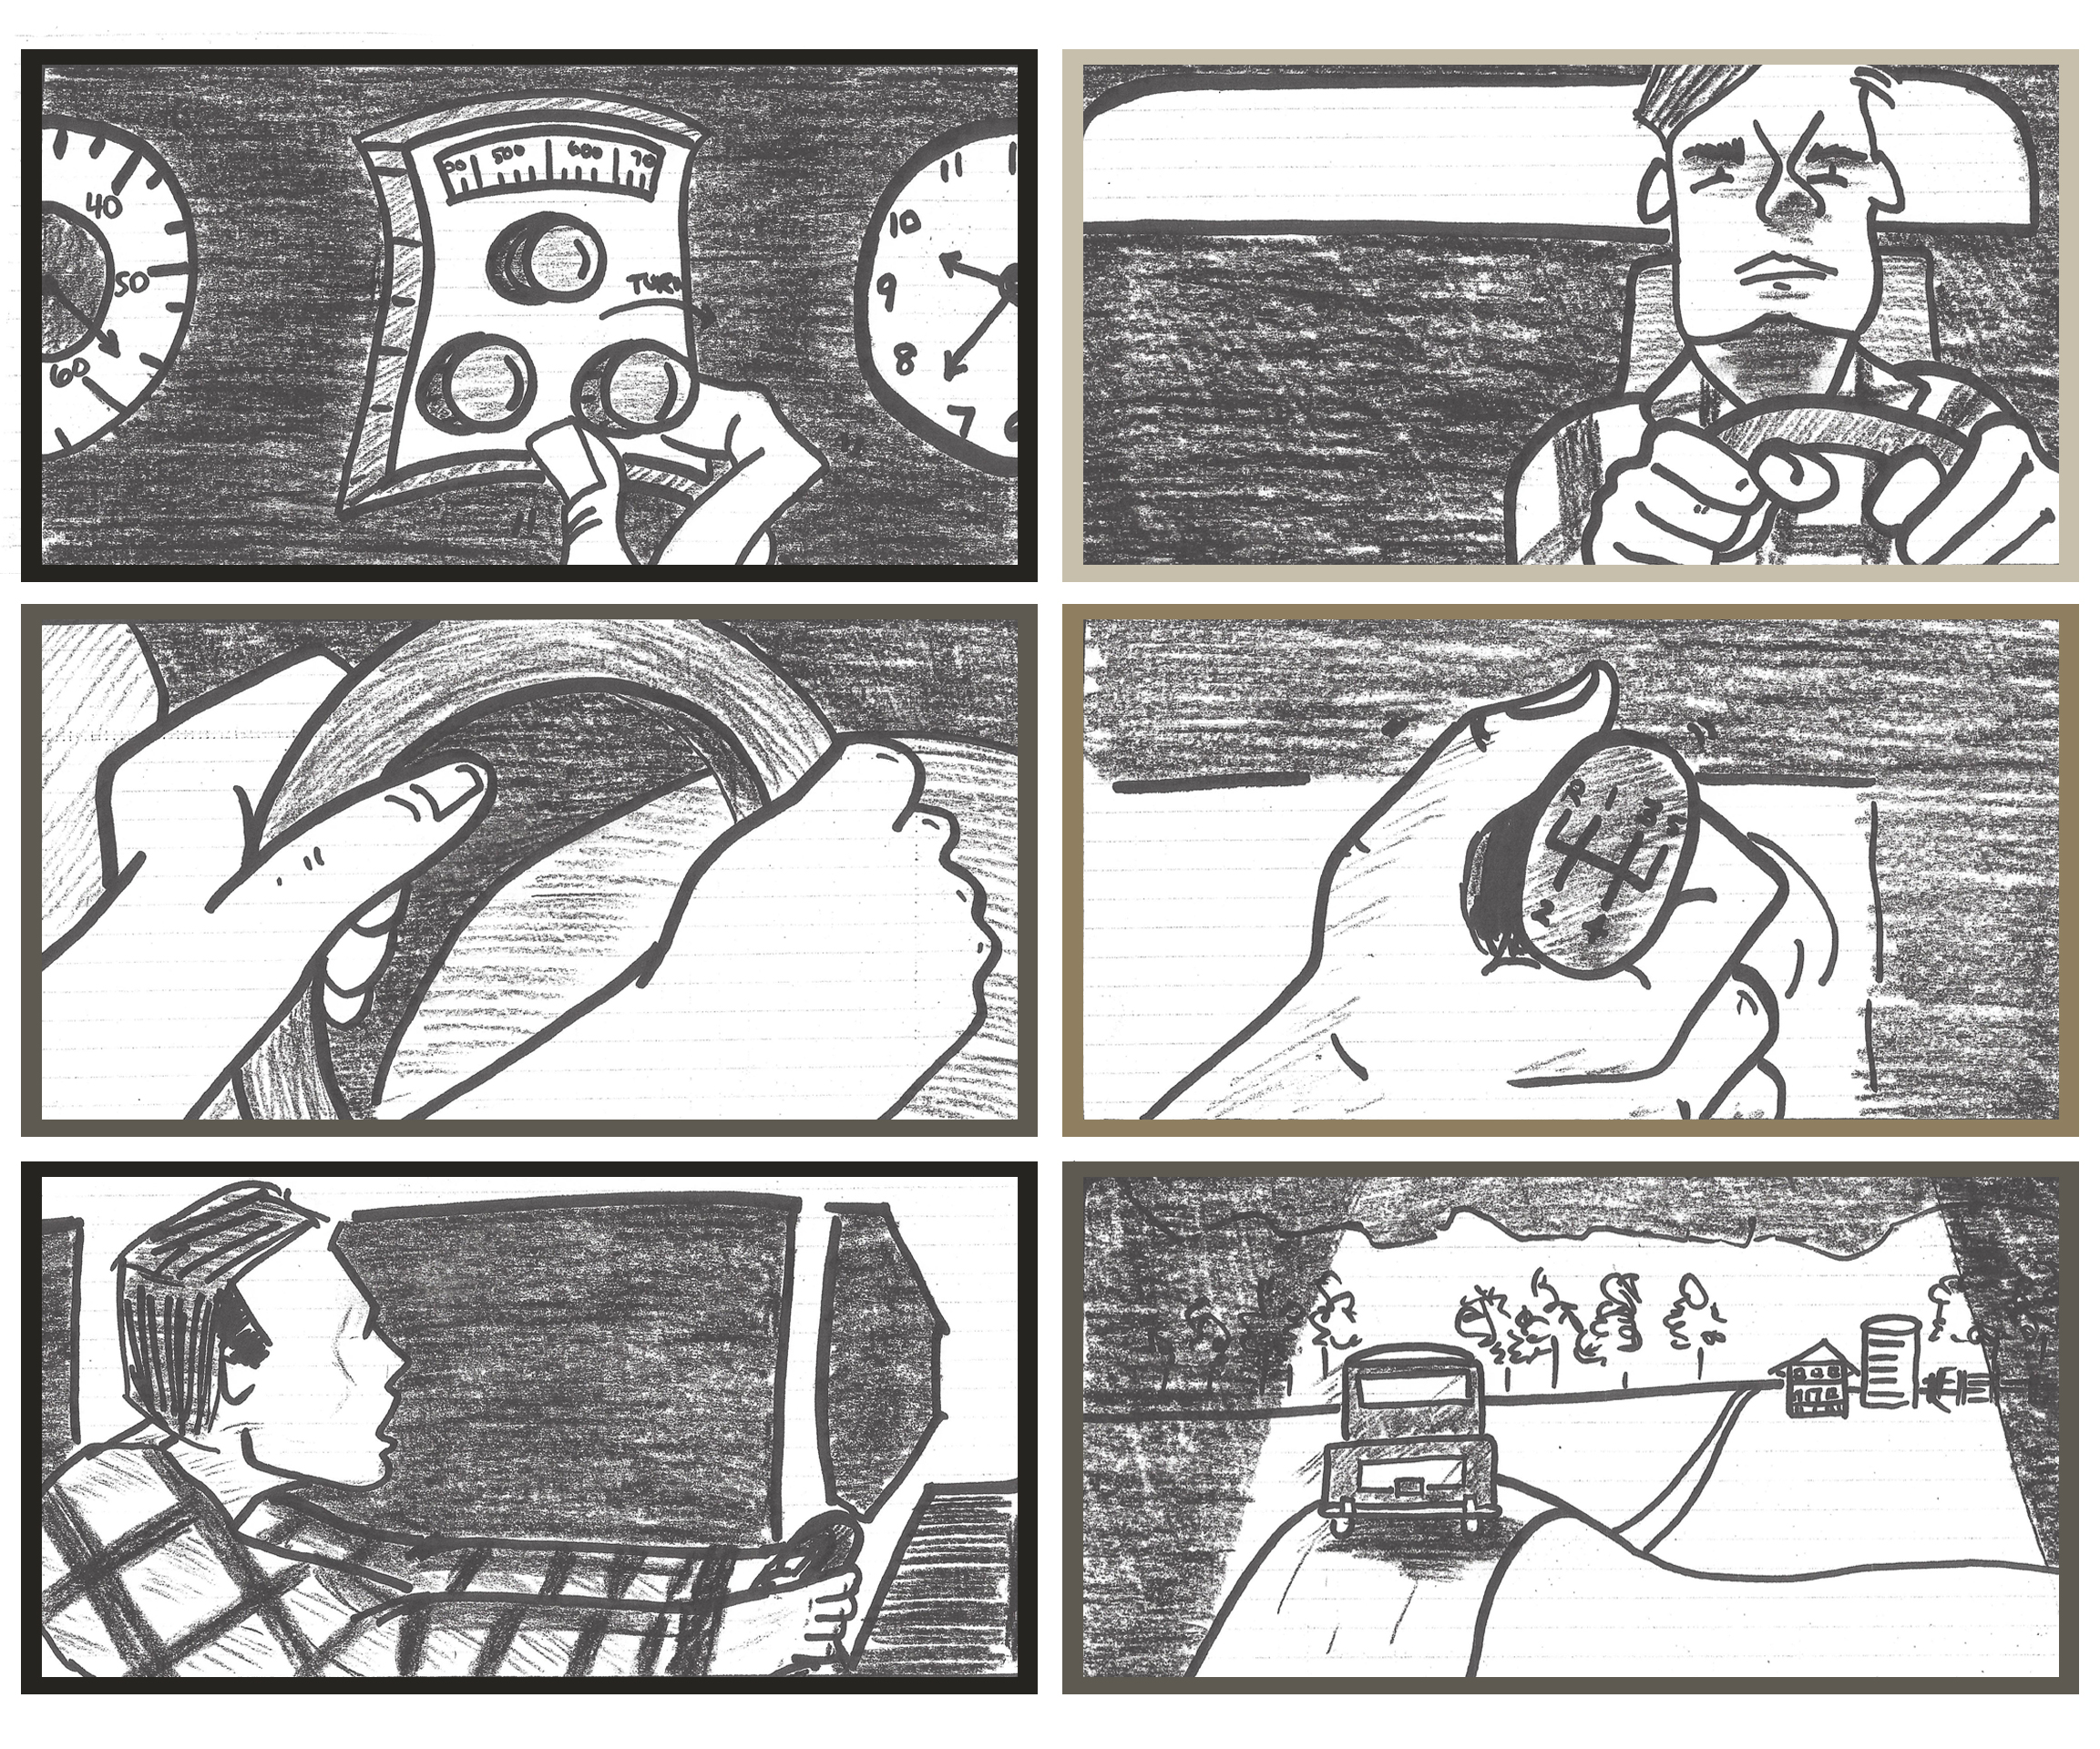 Creating A Storyboard For A Short Film.